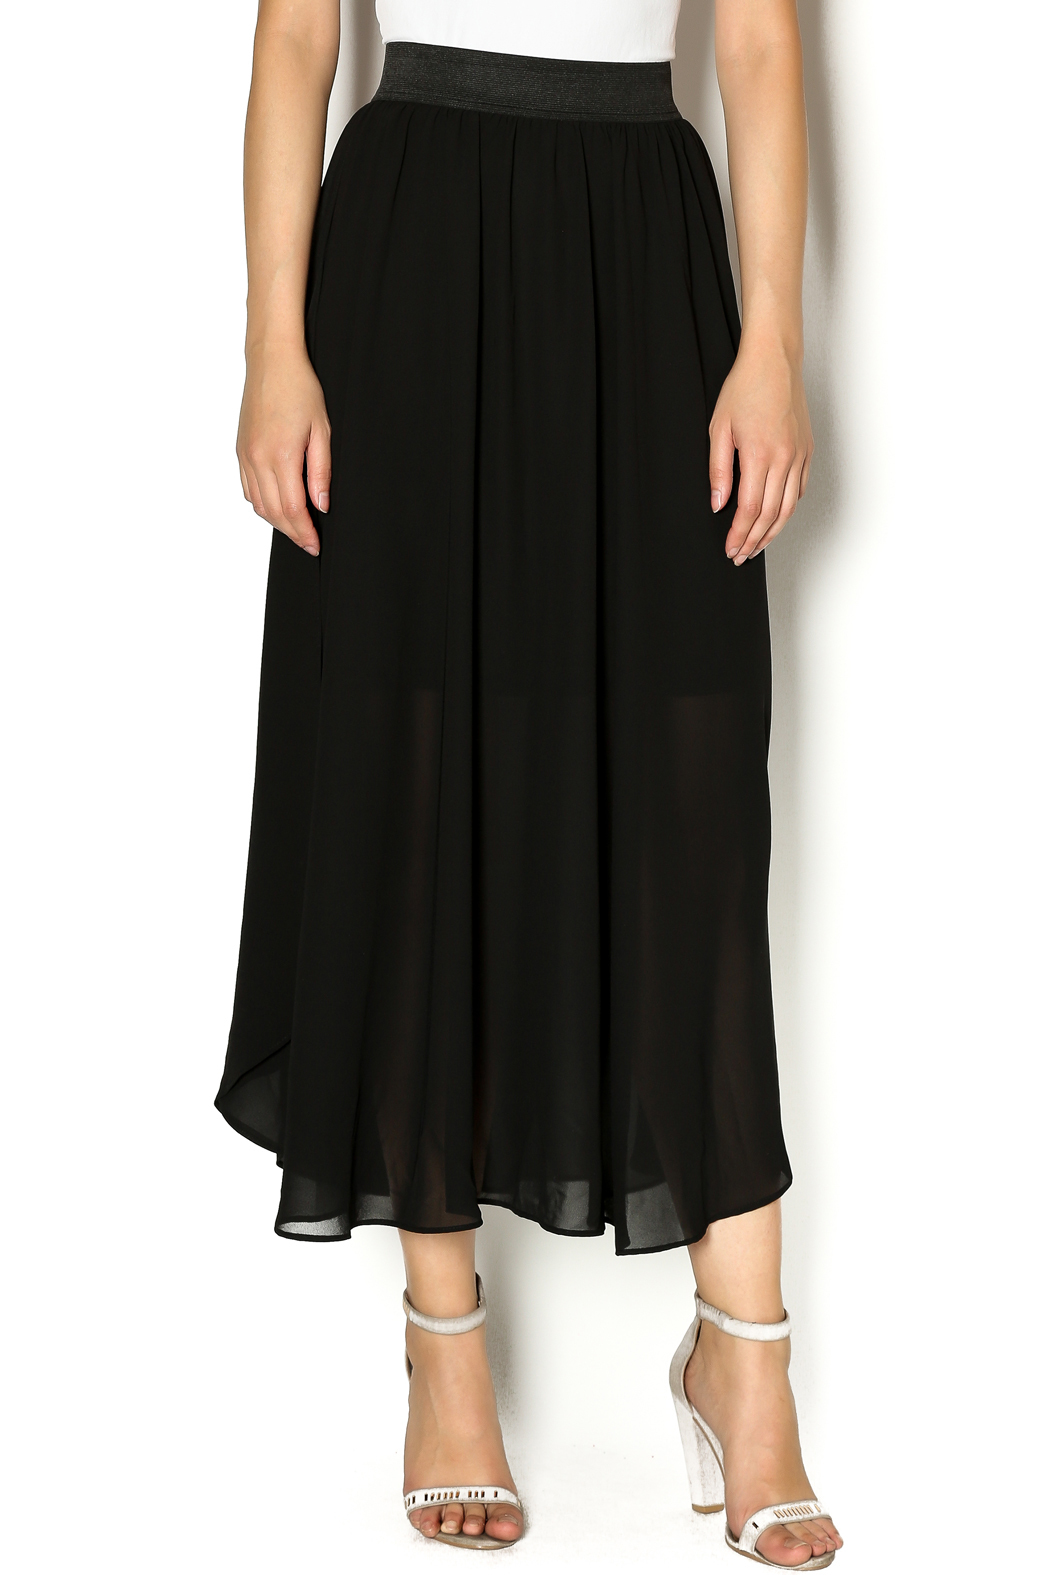 This split skirt is a perfect fit and is exactly what I was looking for. It is a little longer the the others I have, which are too short to wear in the winter. The /5(26).